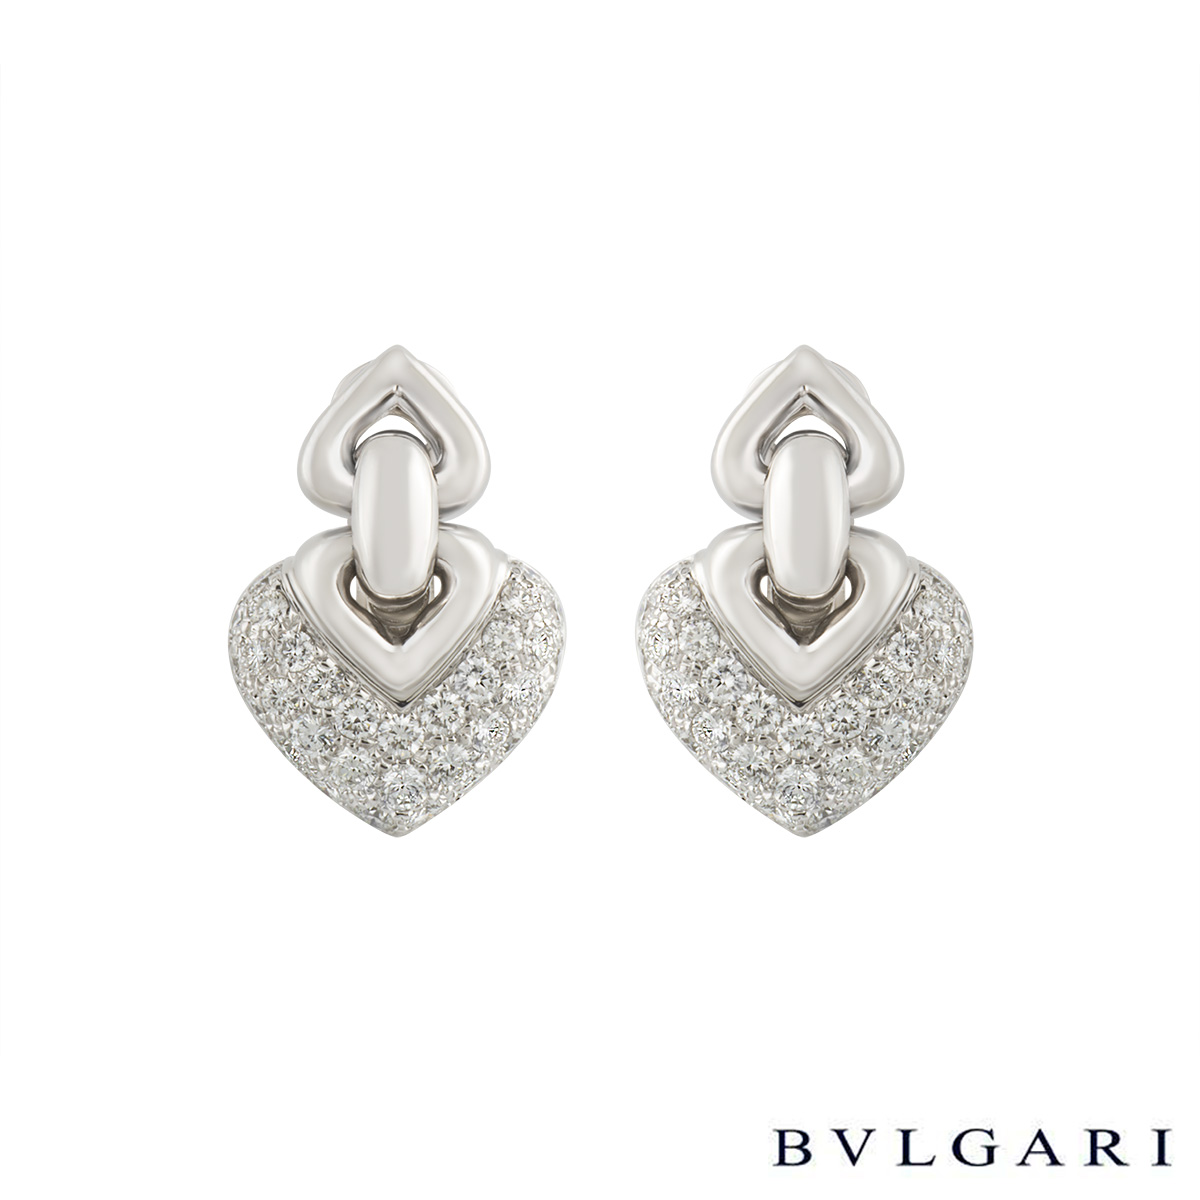 Bvlgari 18k White Gold Doppio Cuore Diamond Earrings 2.00ct